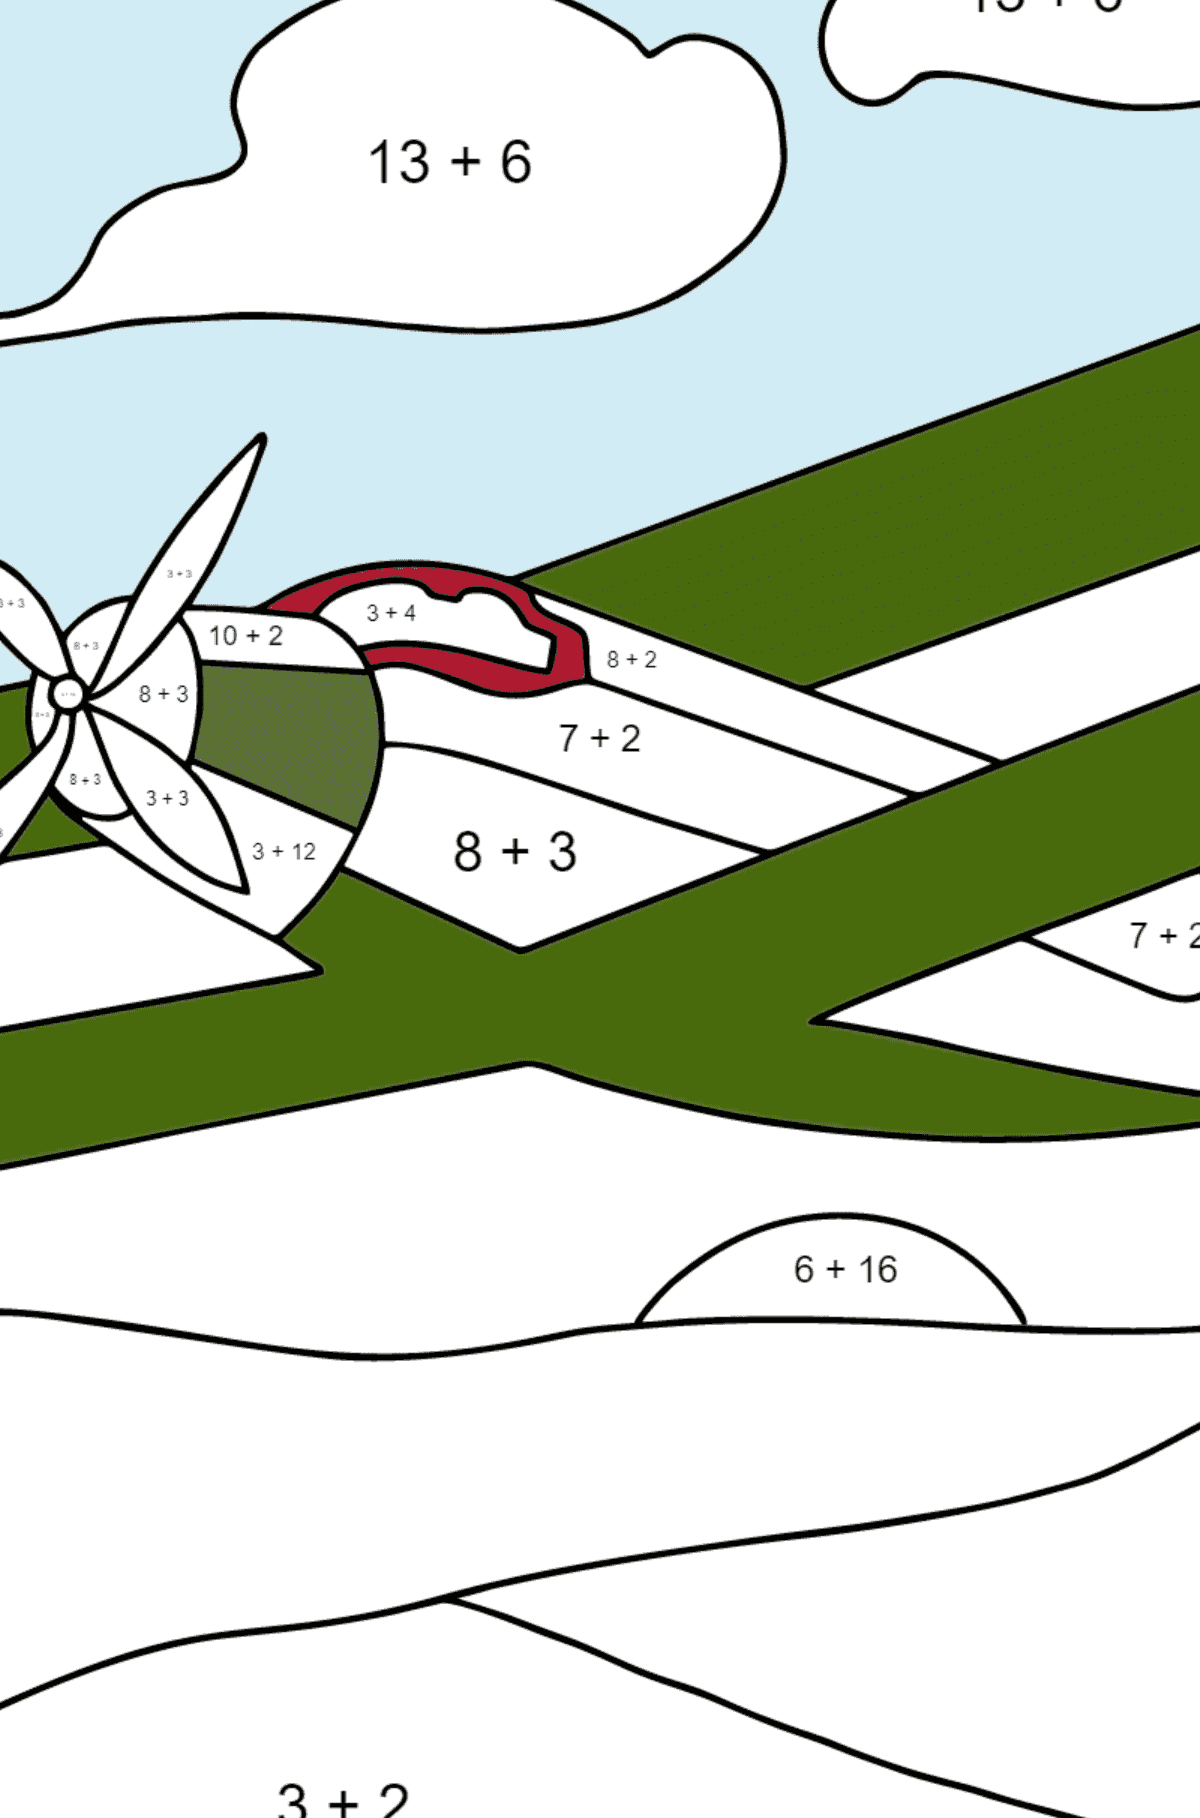 Coloring Page - A Biplane - Math Coloring - Addition for Children